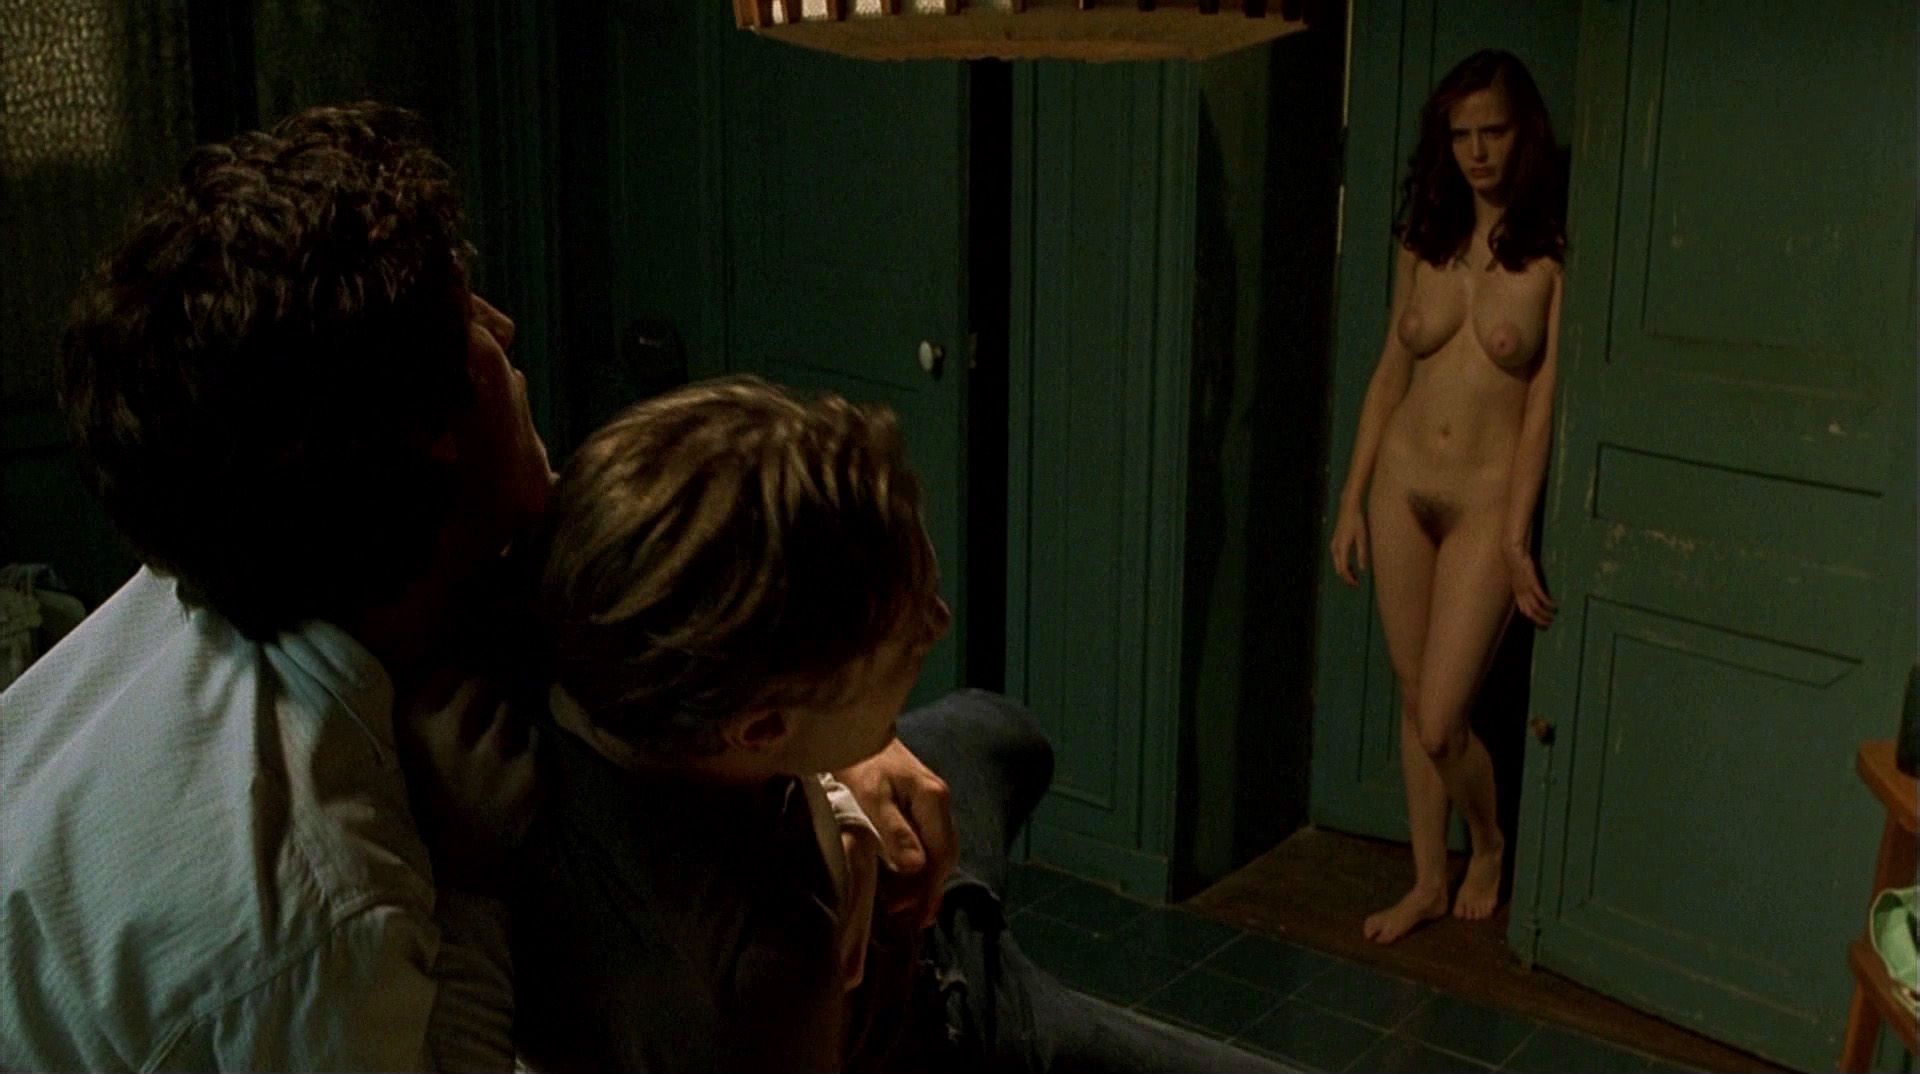 The Dreamers Eva Green Naked